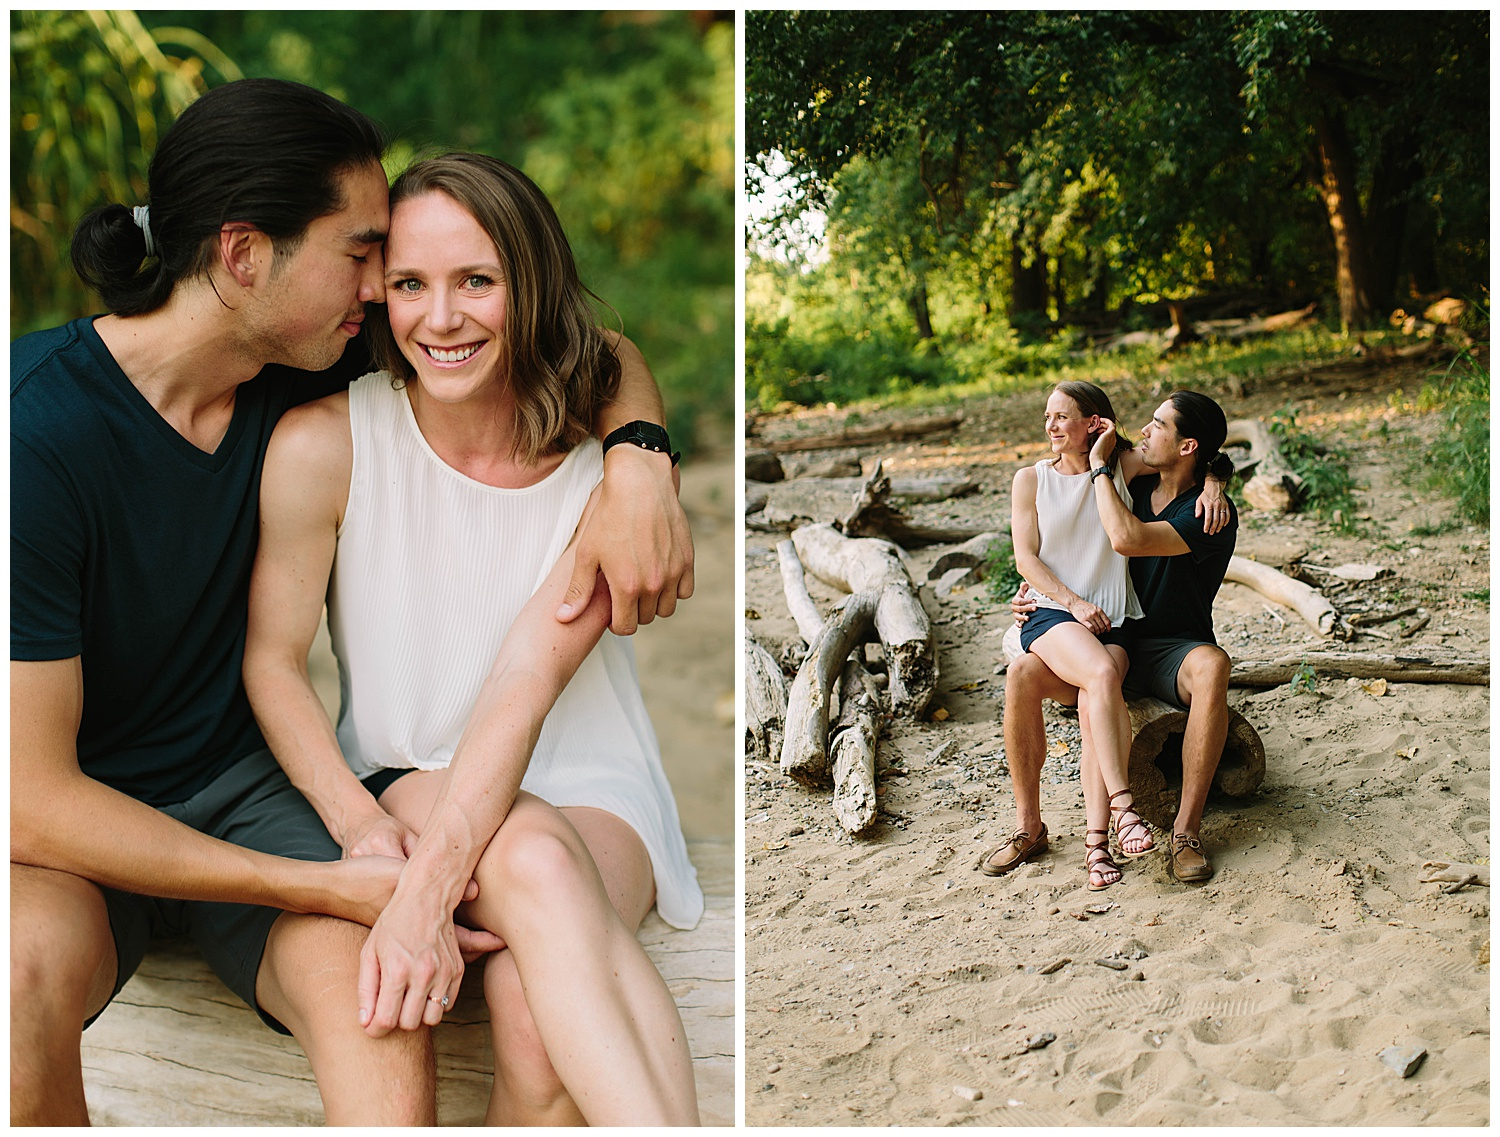 trent.and.kendra.photography.falls.of.the.ohio.engagement.session-8.jpg